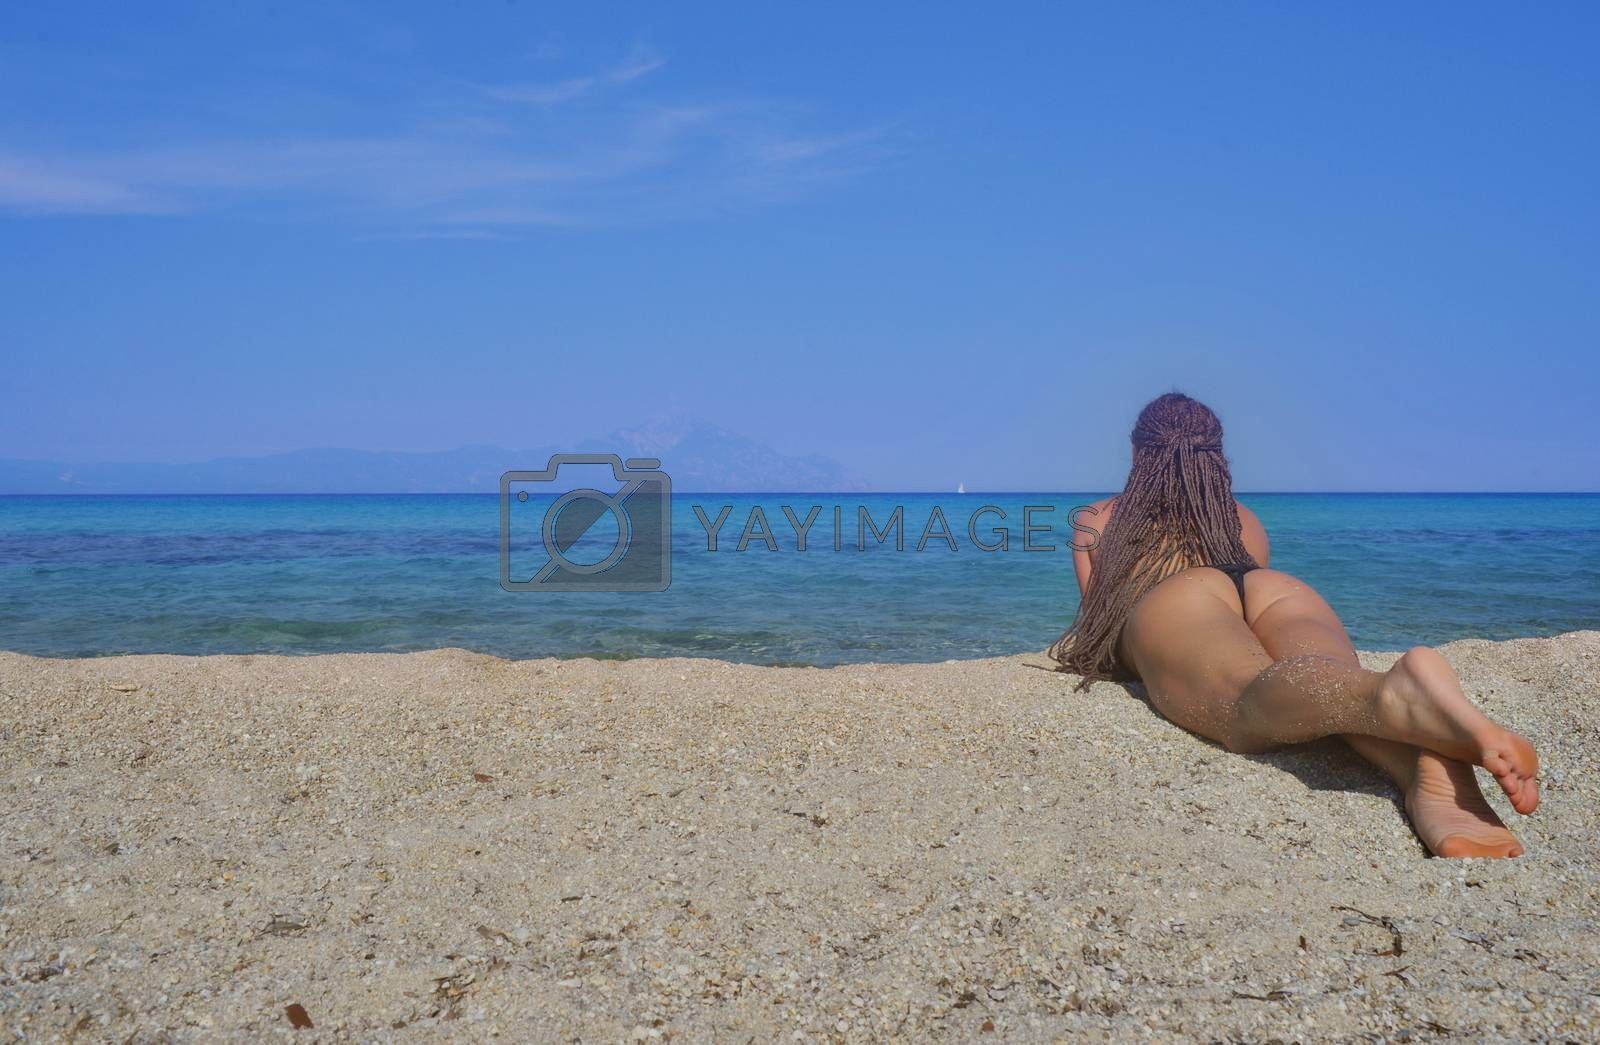 Girl with beautiful body with bikini is lying on the beach looking at sea.